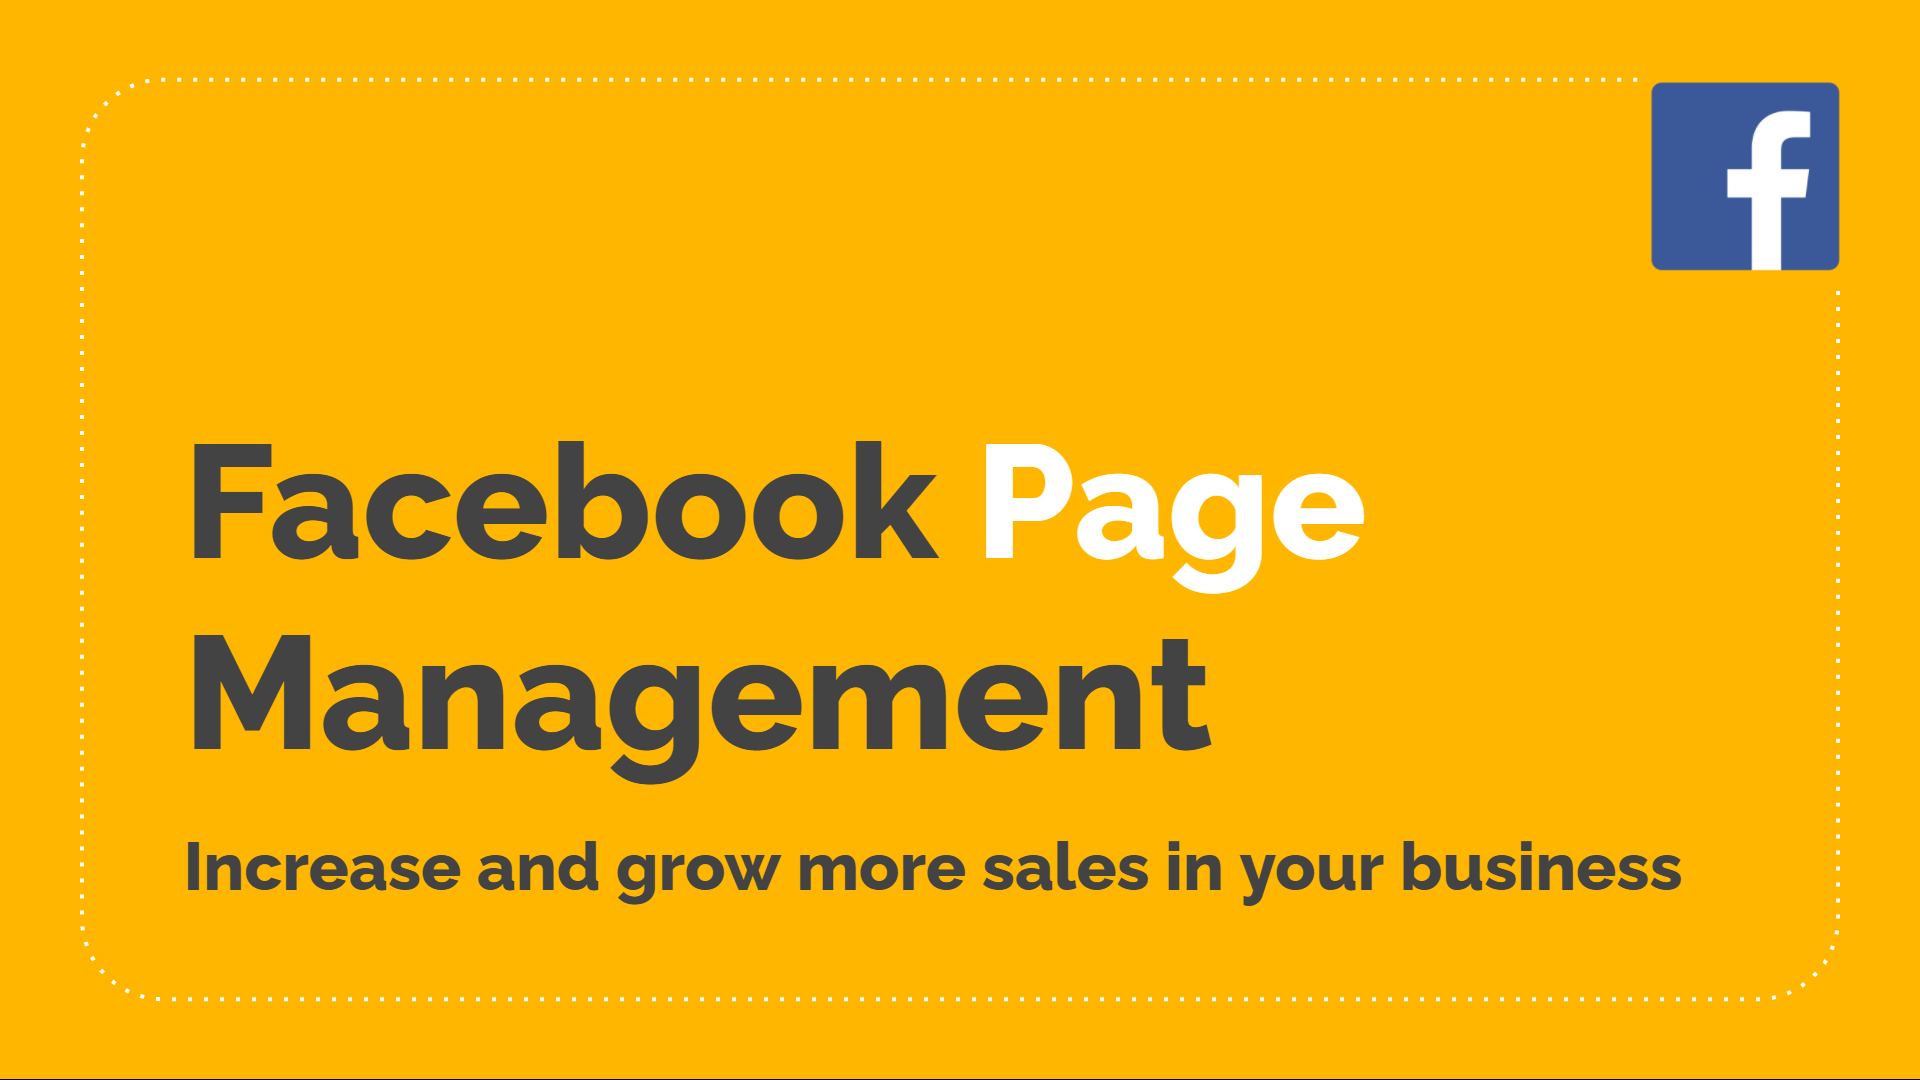 Facebook Page Management Services (Cambodia)